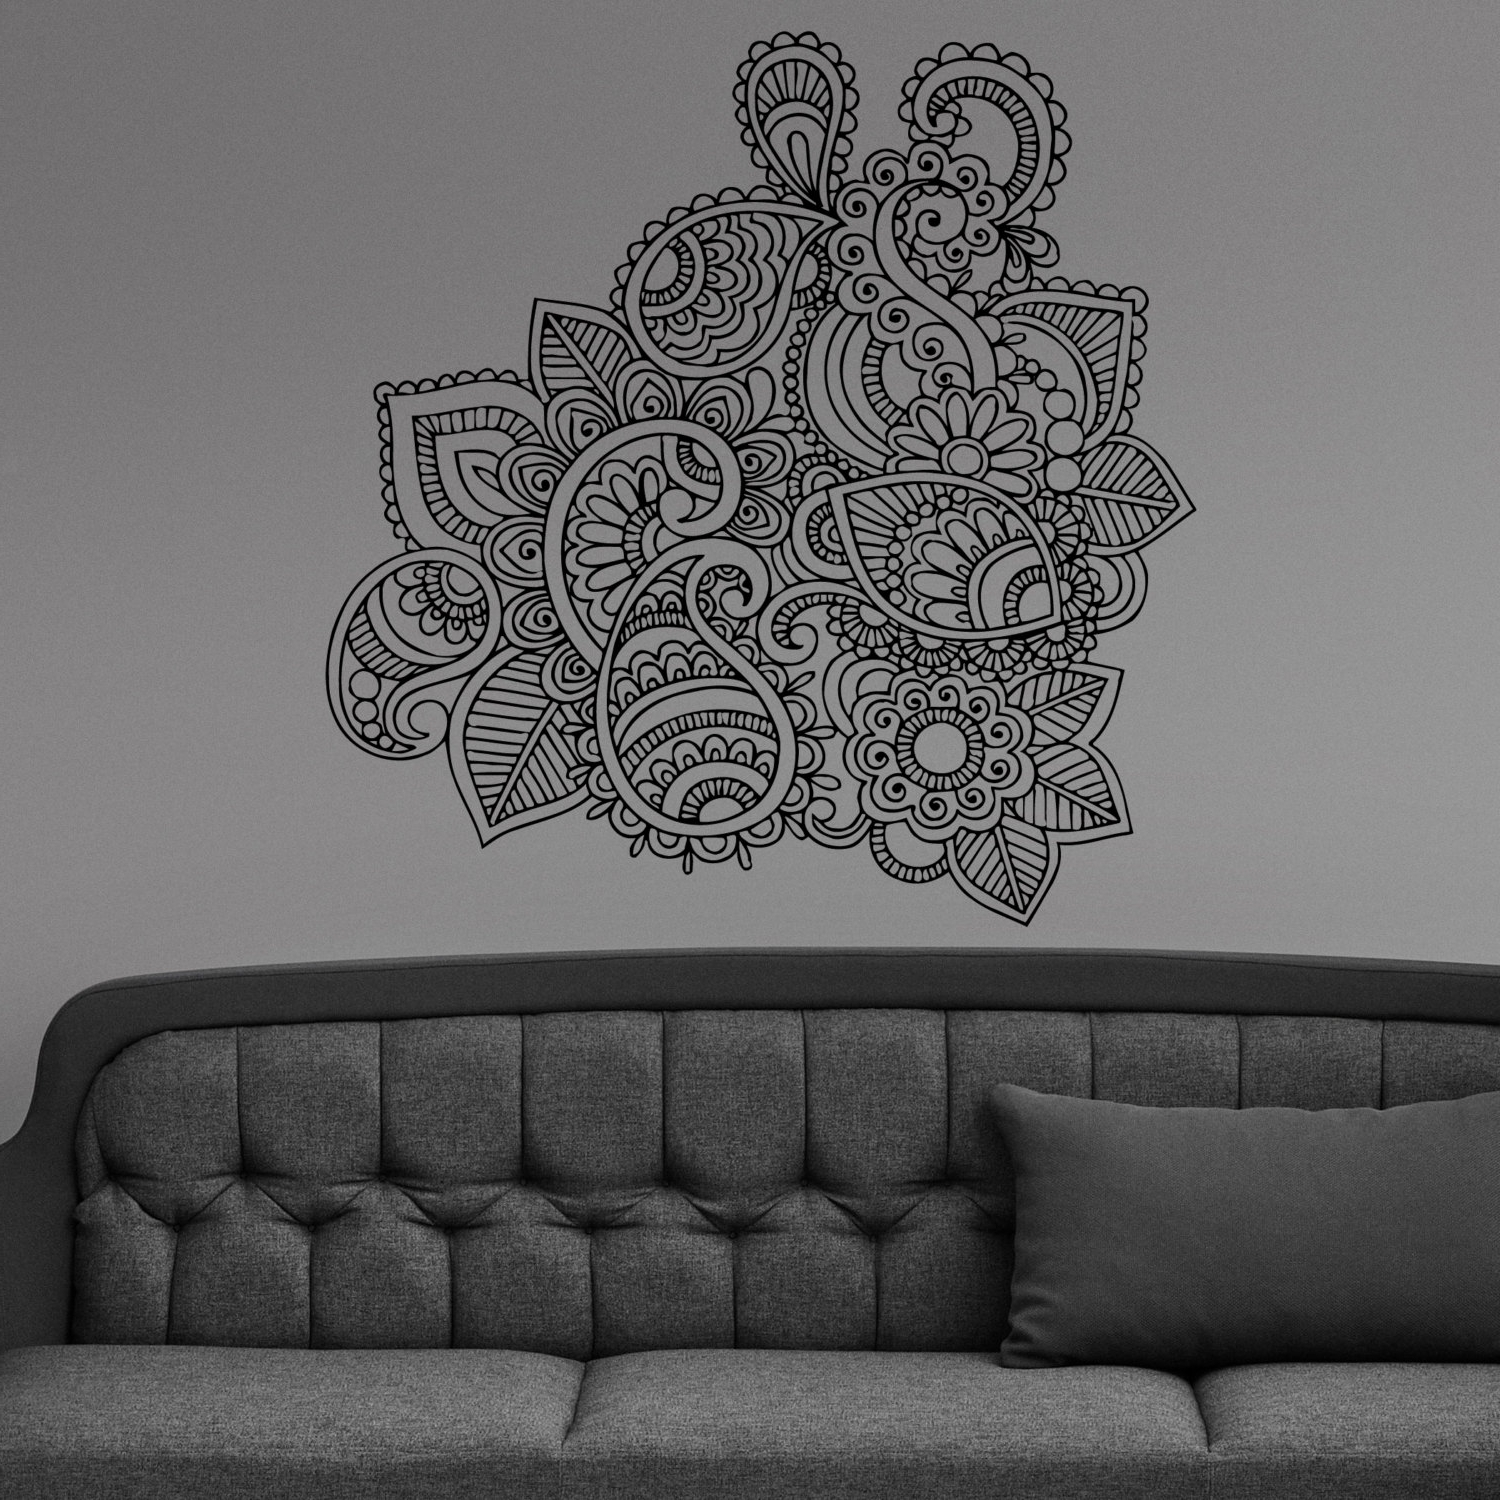 Henna Wall Art Intended For Favorite 42 Henna Wall Art, Boho Spirit Page 3 Artbedding – Swinkimorskie (Gallery 3 of 15)